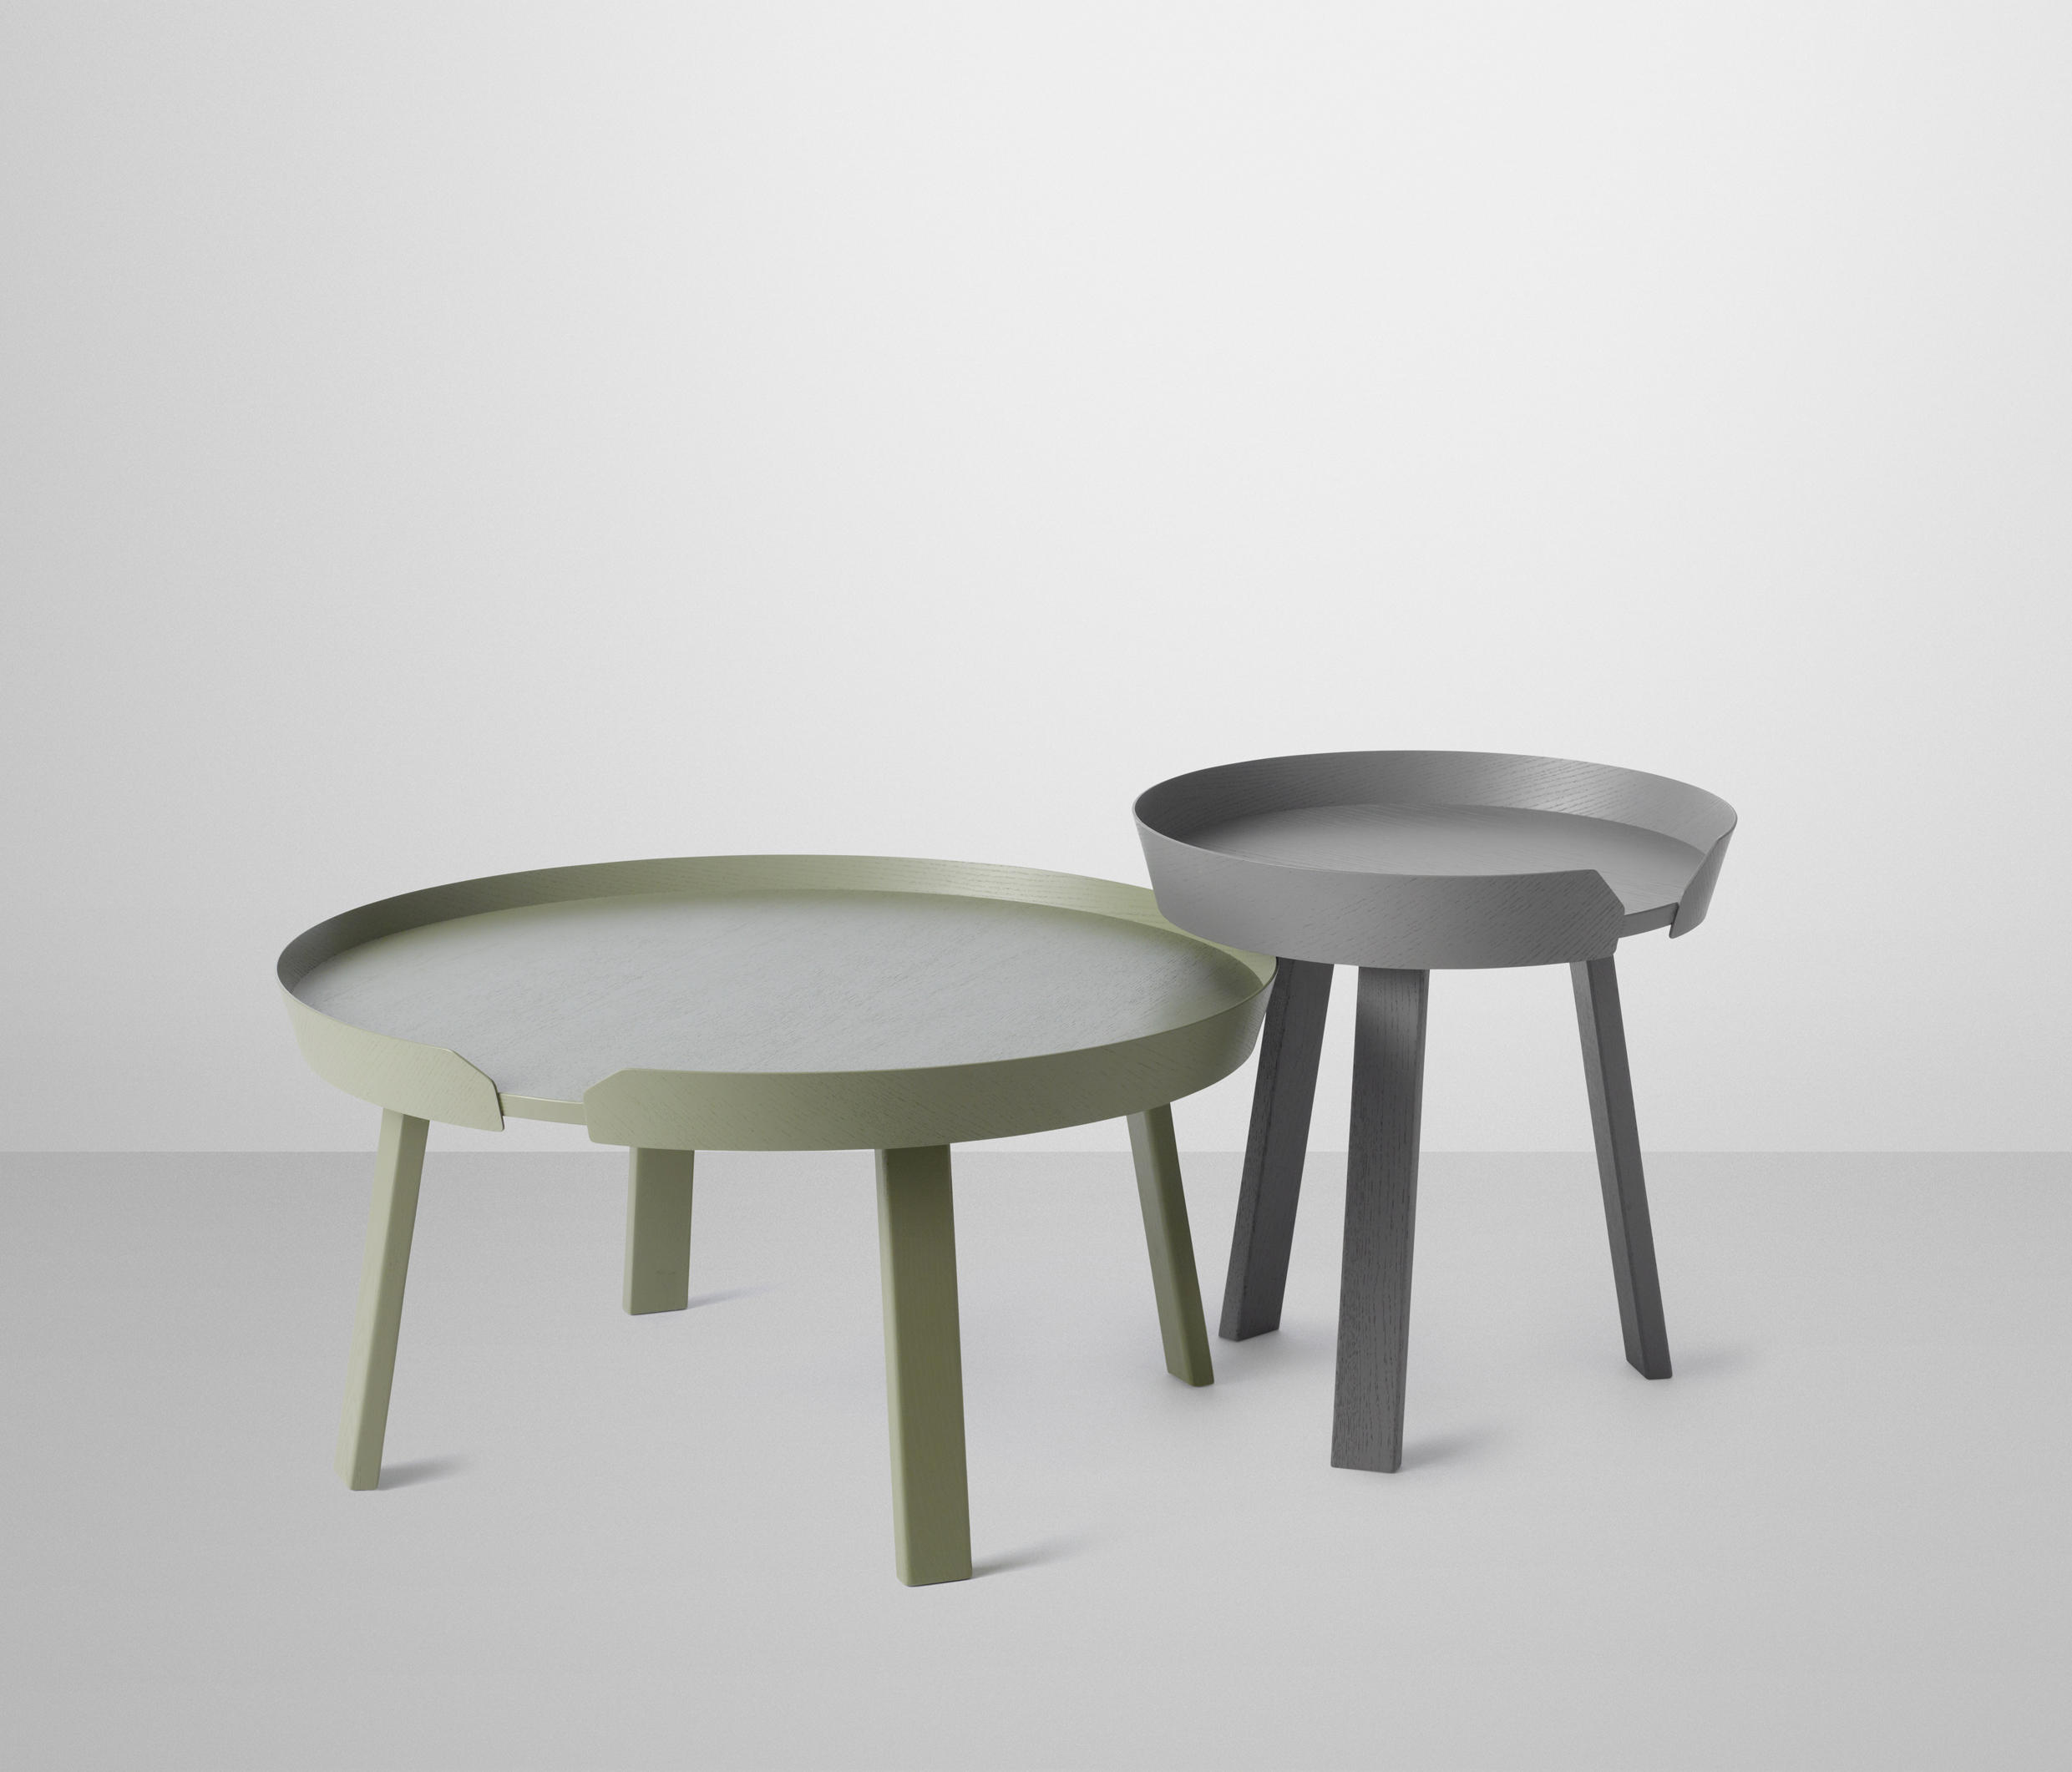 AROUND COFFEE TABLE SMALL Side tables from Muuto